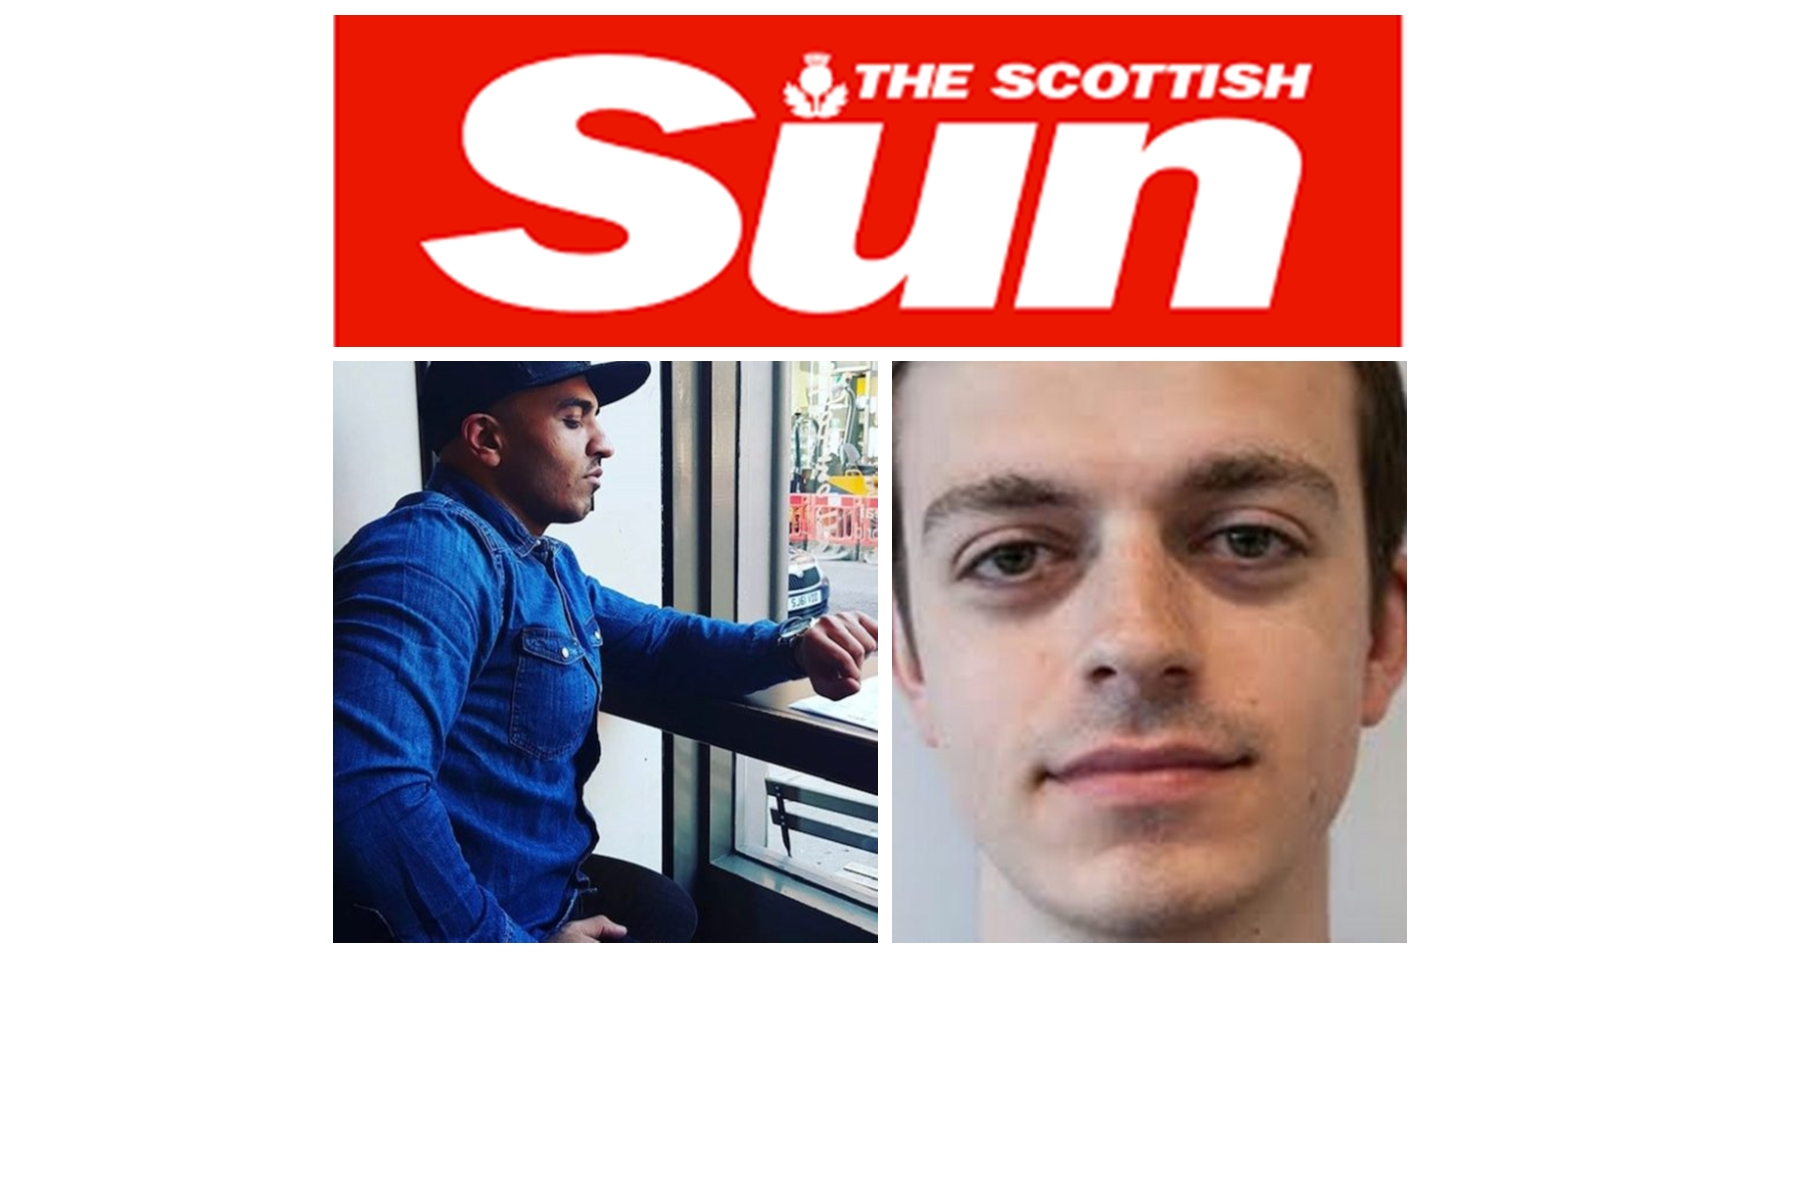 Slimy Scottish Sun Journo Creep Exposed: Vile Reporter Nut Connor Gordon Blasted For Sleazy Article Celebrating Wrongful Imprisonment Of Dating Coach Addy Agame (Who Was Proven Innocent And Acquitted In High Court)